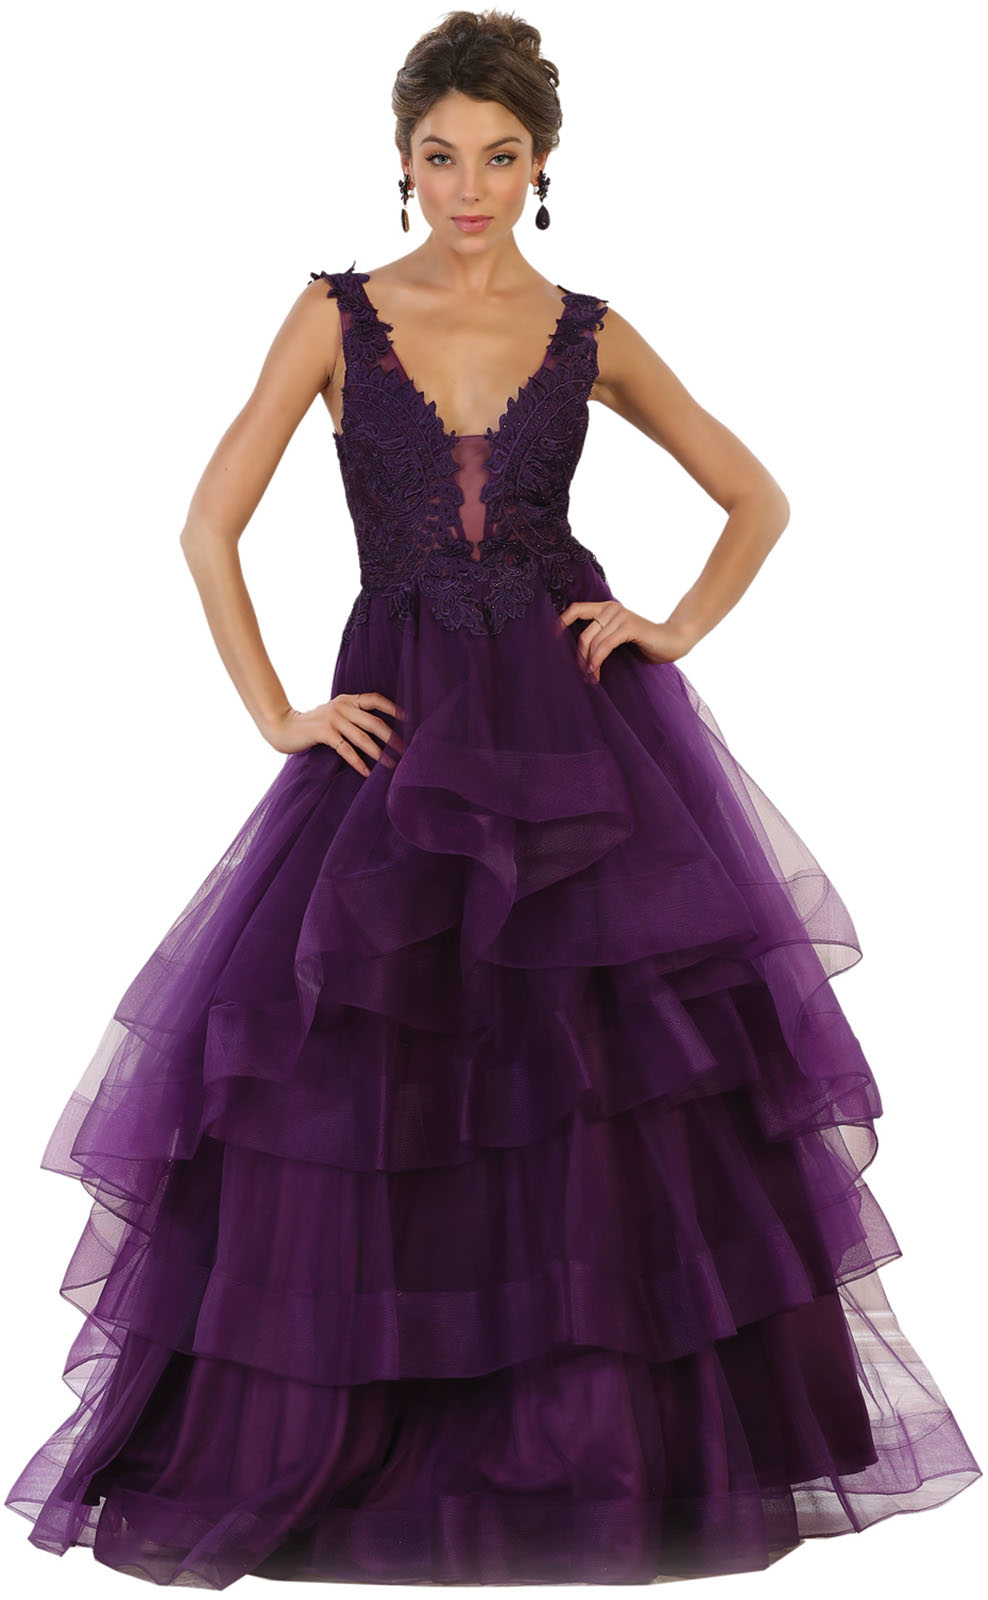 New formal evening gala red carpet designer prom dress - Designer red carpet dresses ...